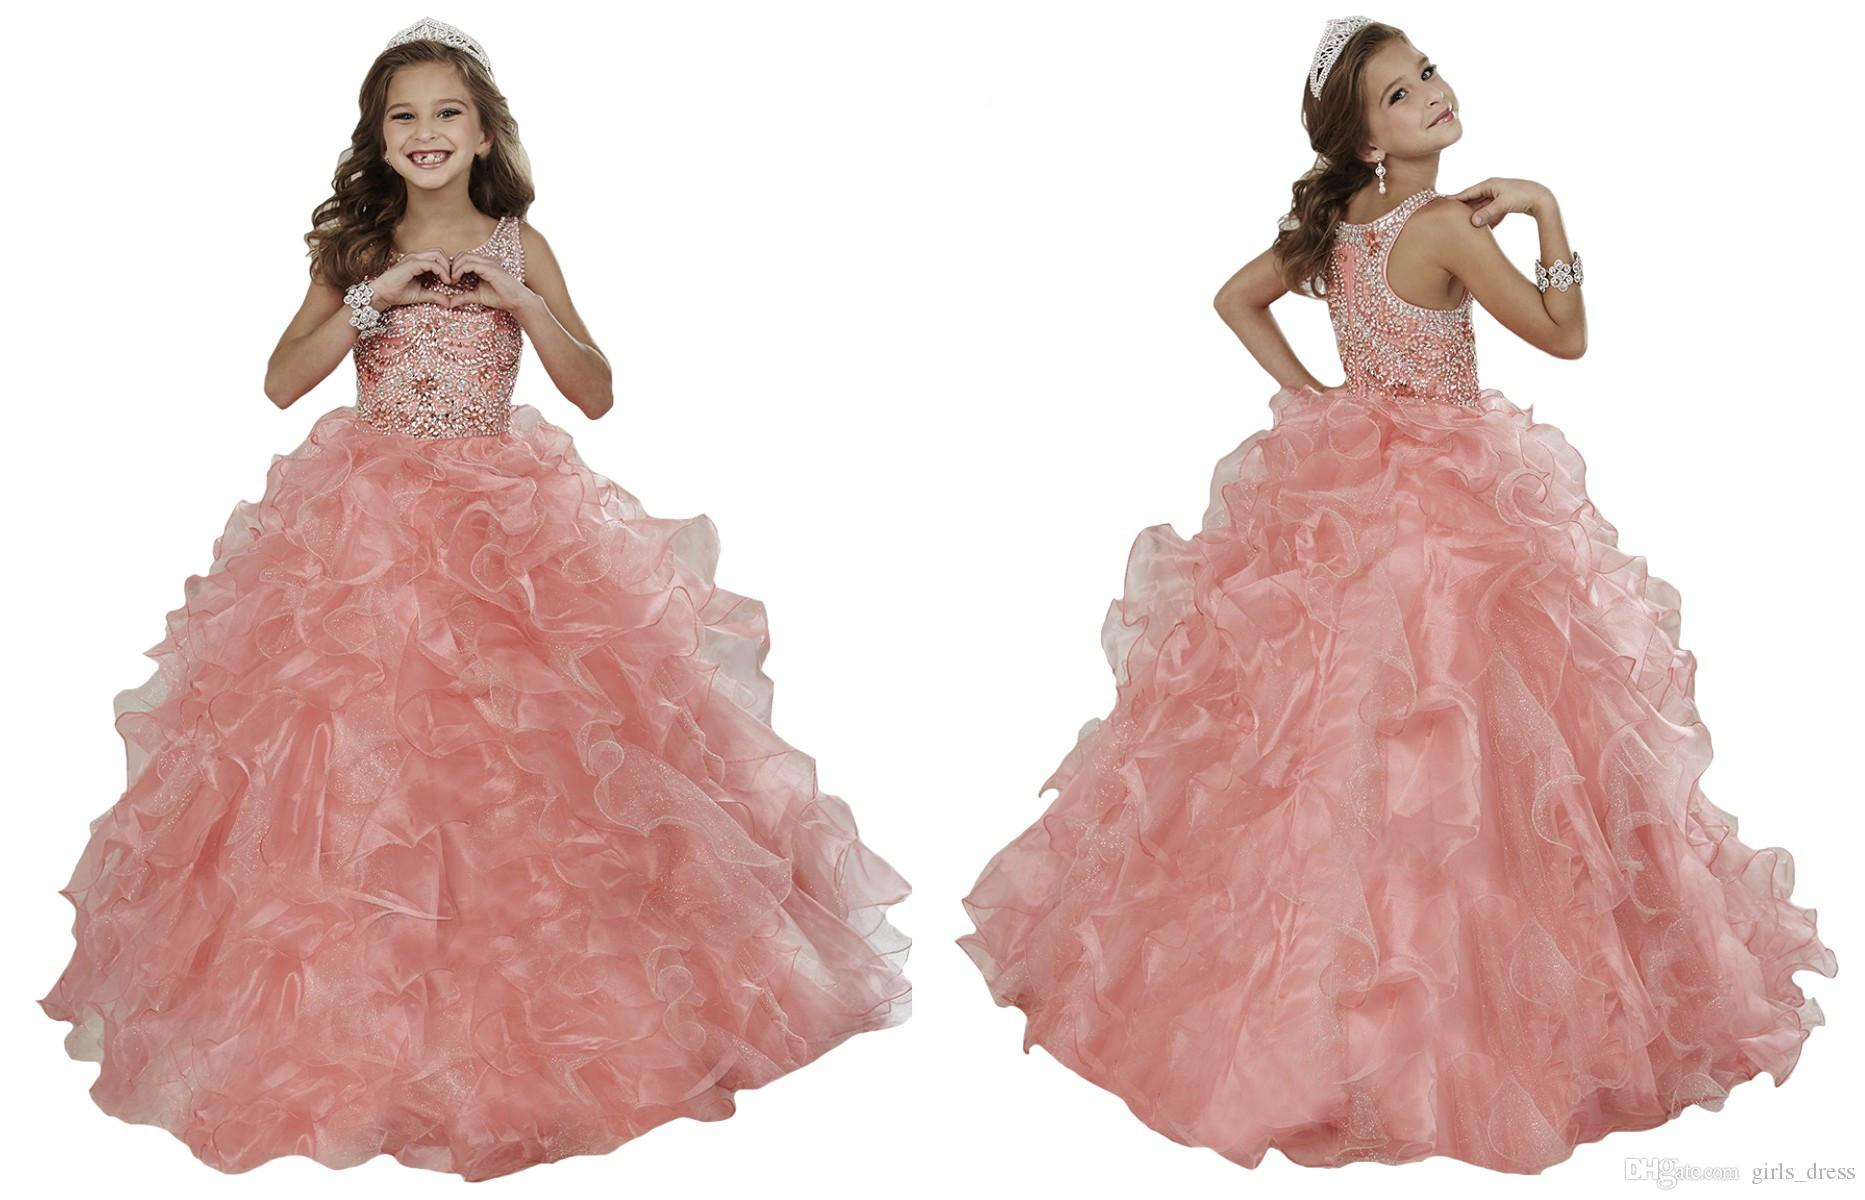 641d4952254 Hot Pink Pageant Dresses For Sale - Gomes Weine AG